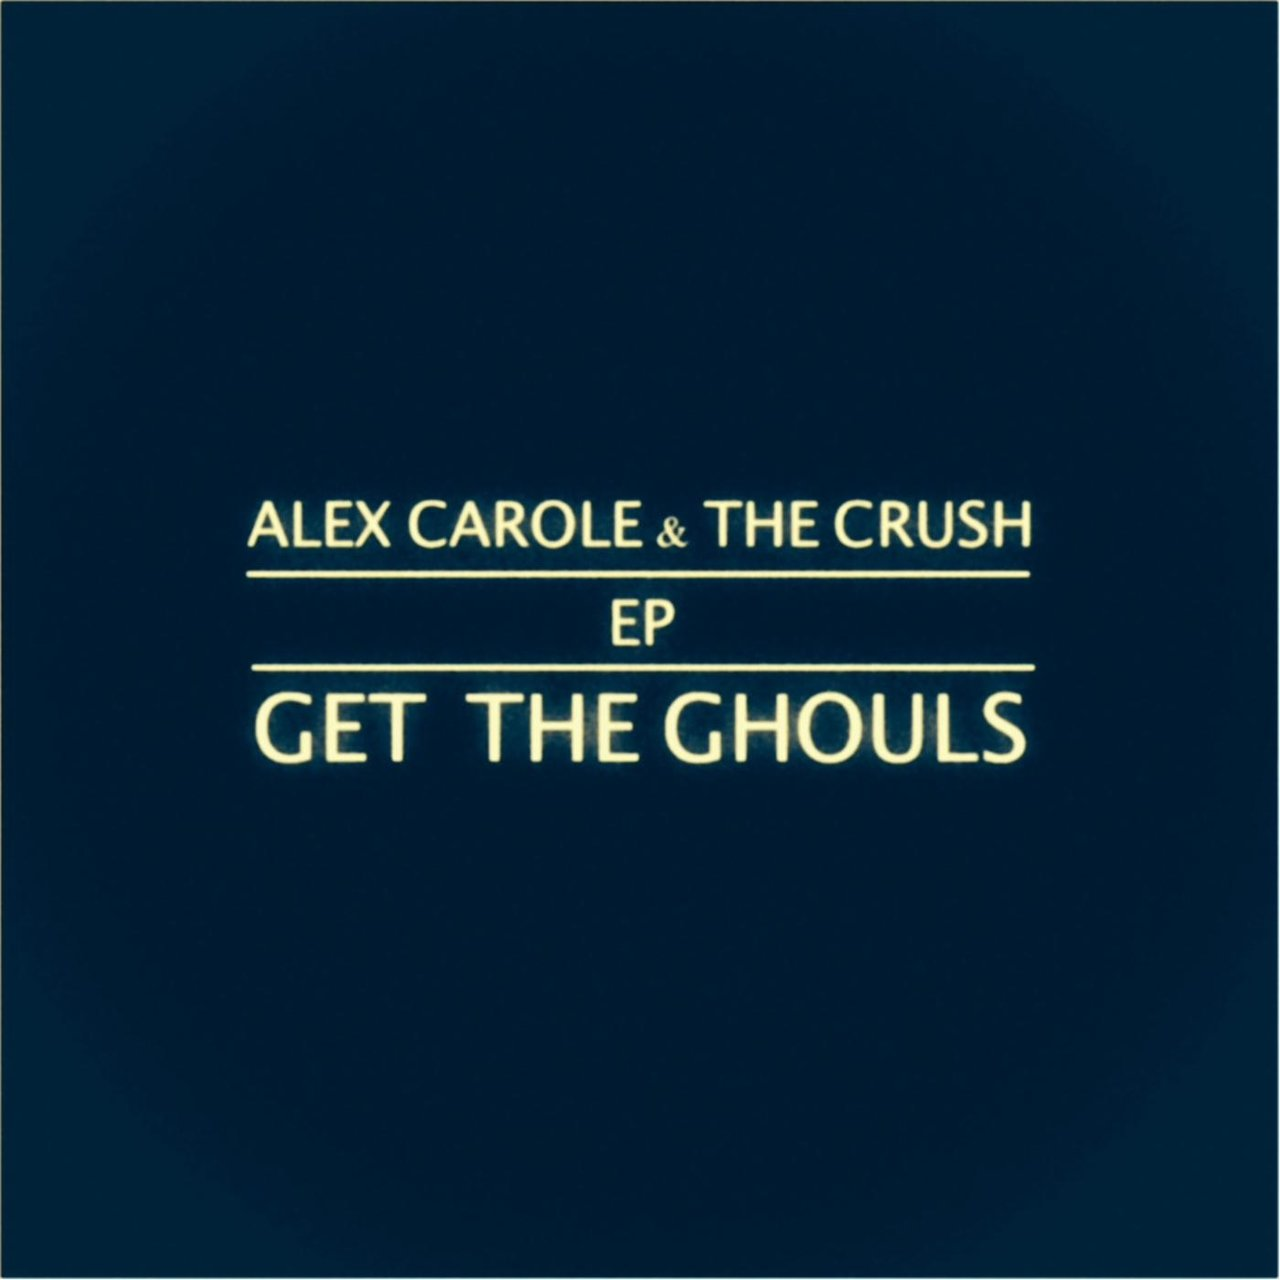 Get the Ghouls (Ep)